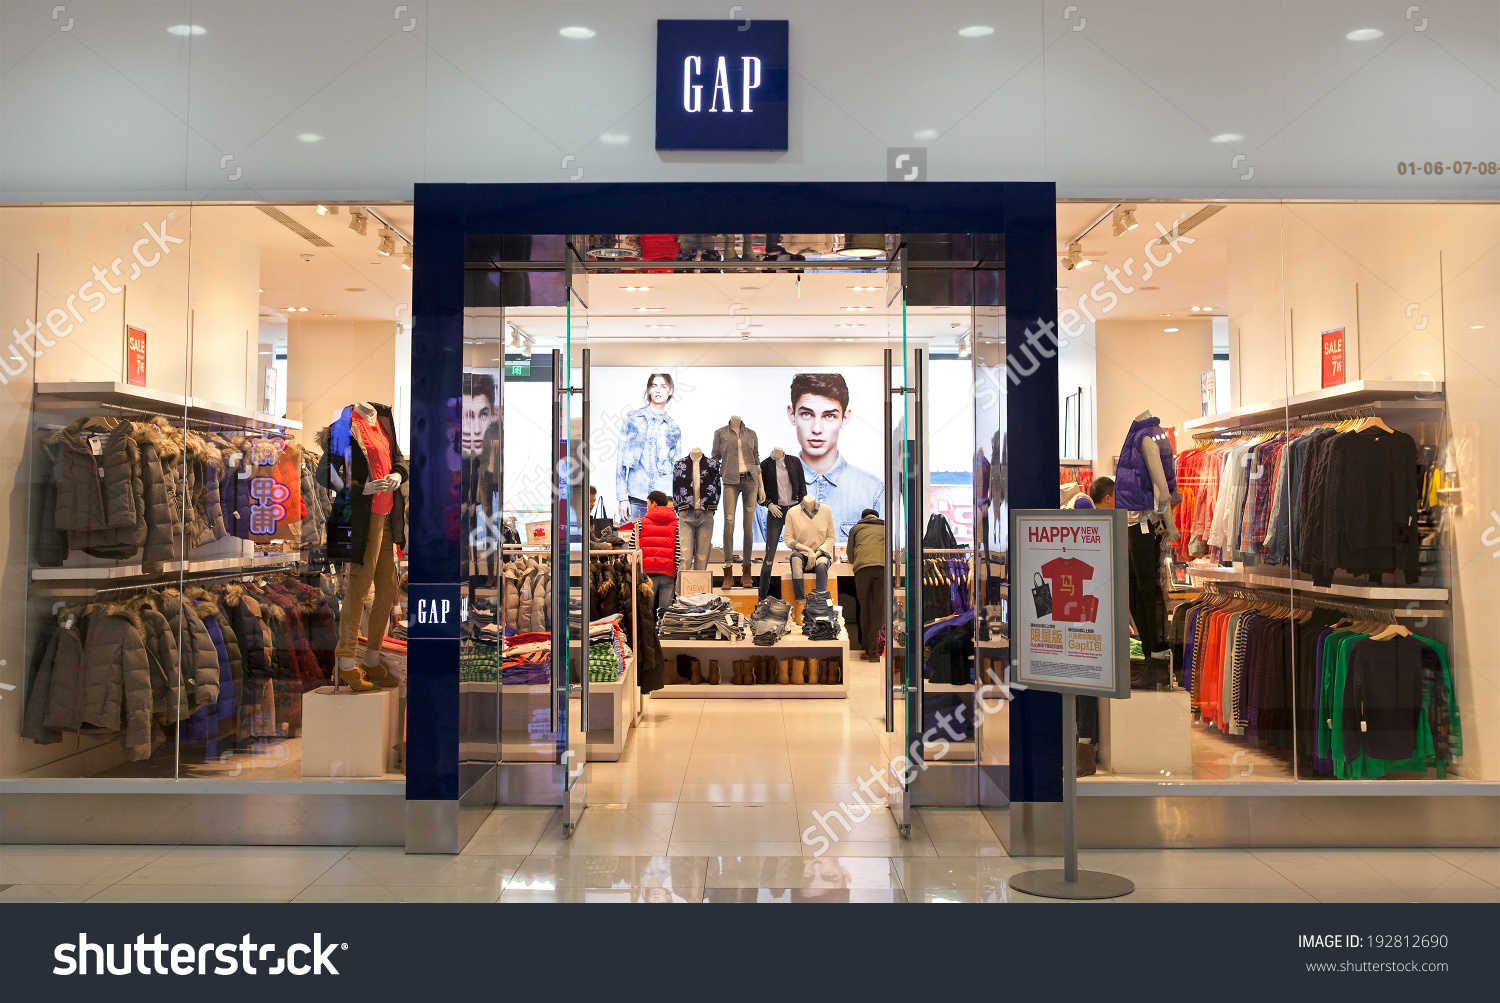 stock-photo-beijing-china-jan-gap-store-gap-is-an-american-multinational-clothing-and-accessories-192812690